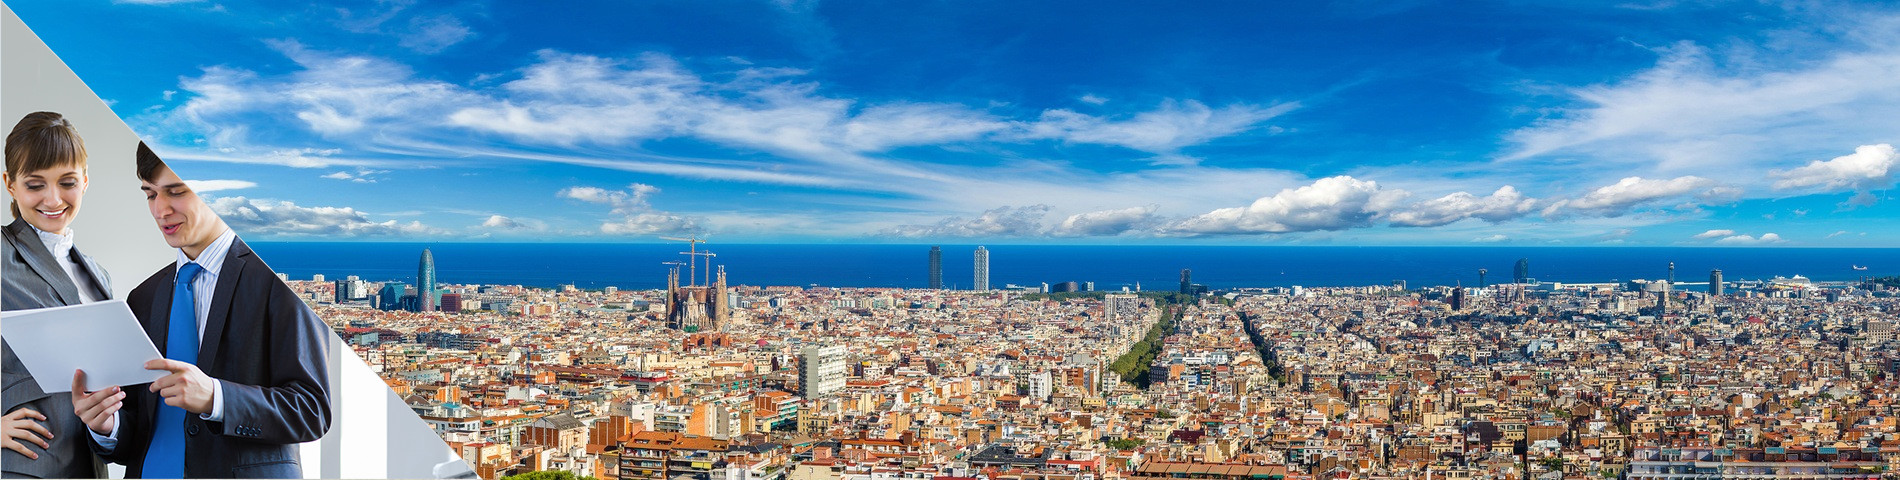 Barcelona - Business One-to-One